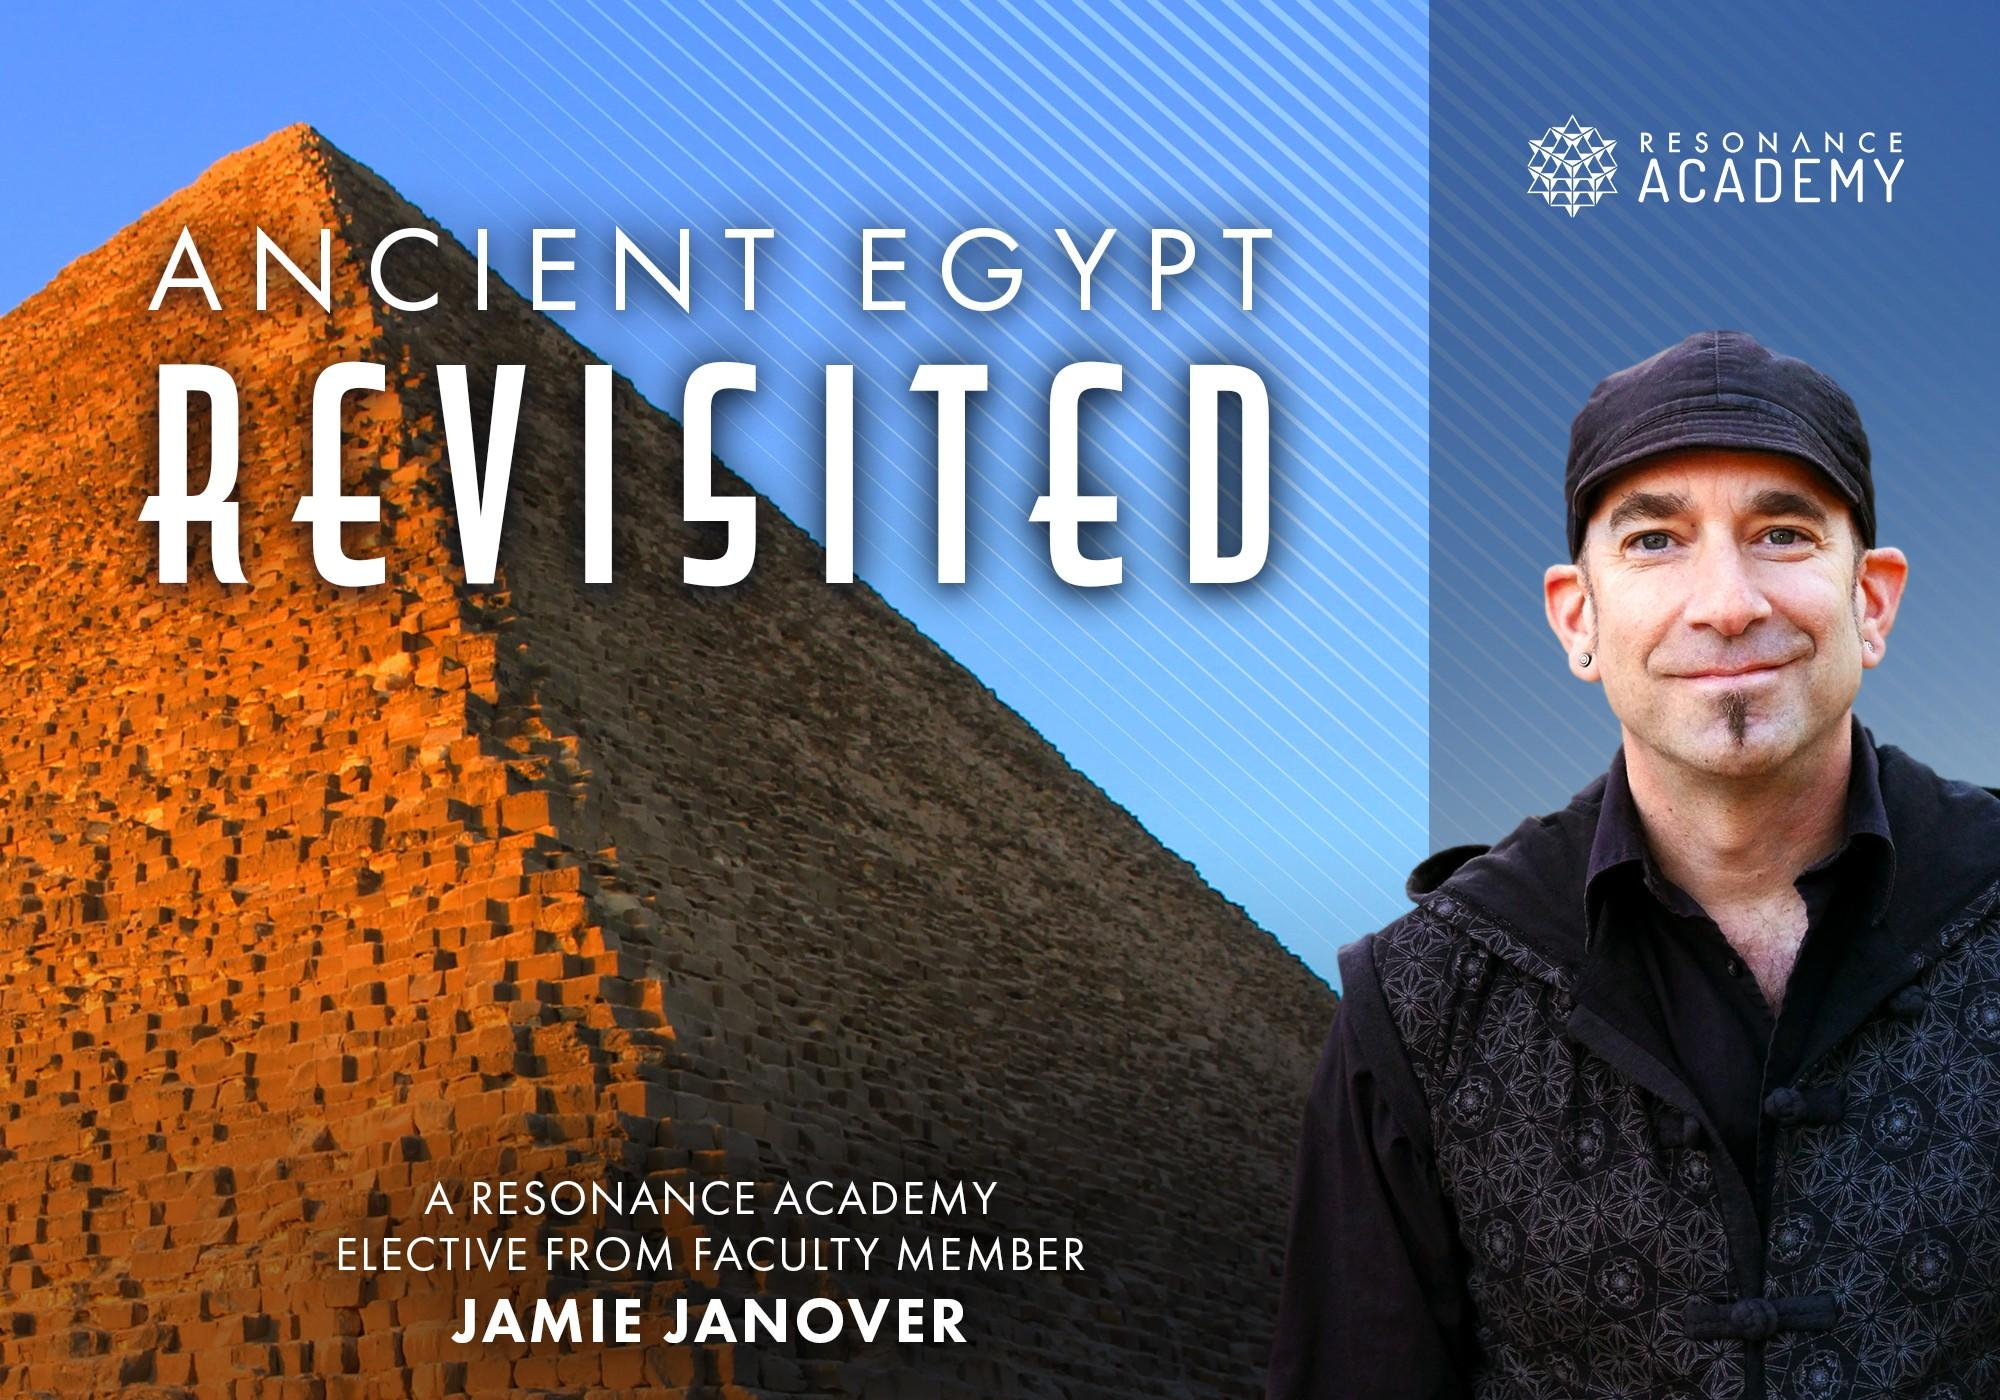 Ancient Egypt Revisited